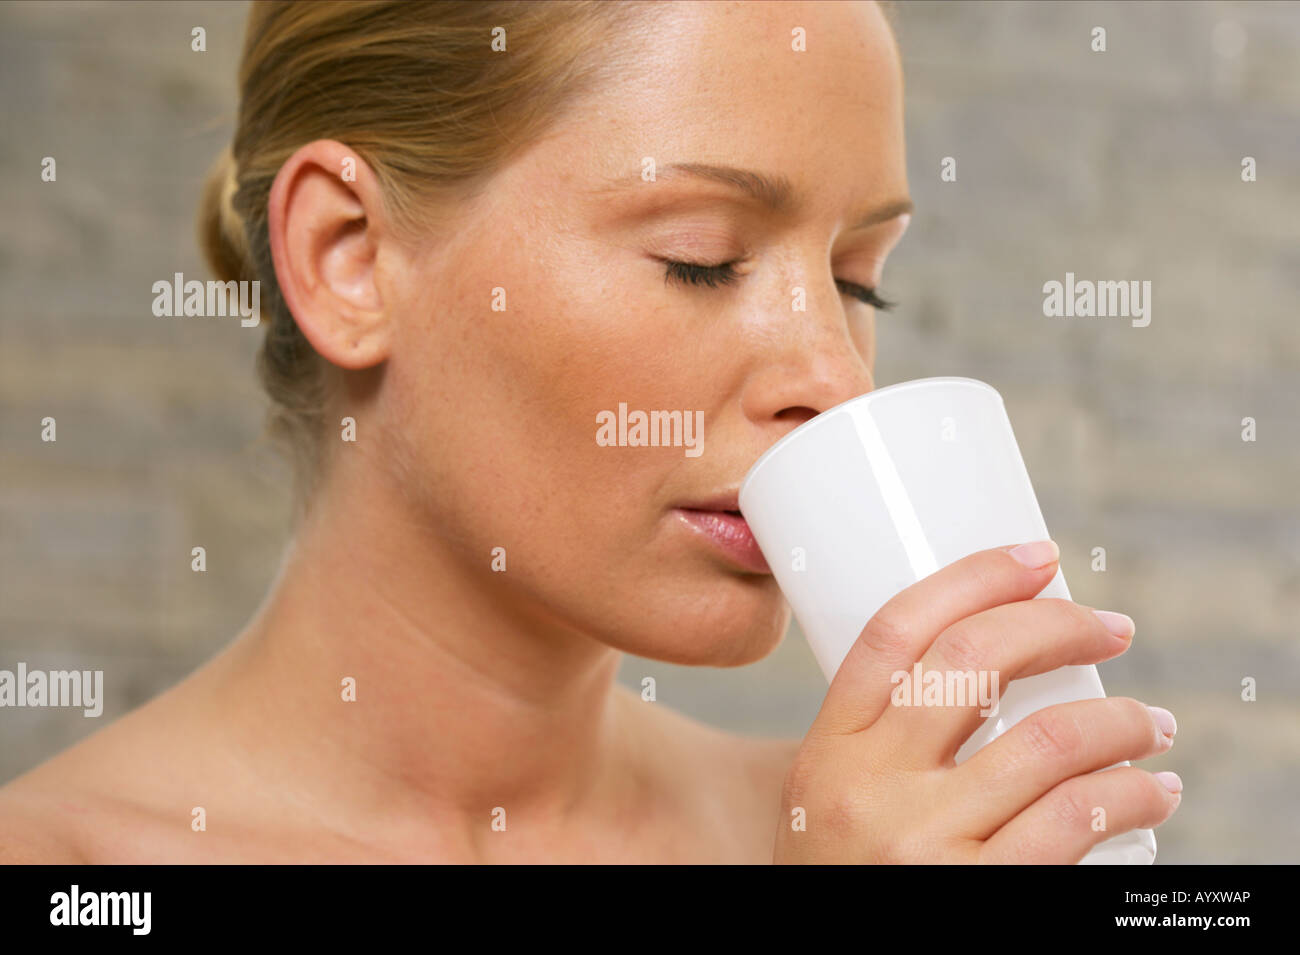 Young woman with closed eyes drinking of a glass - Stock Image